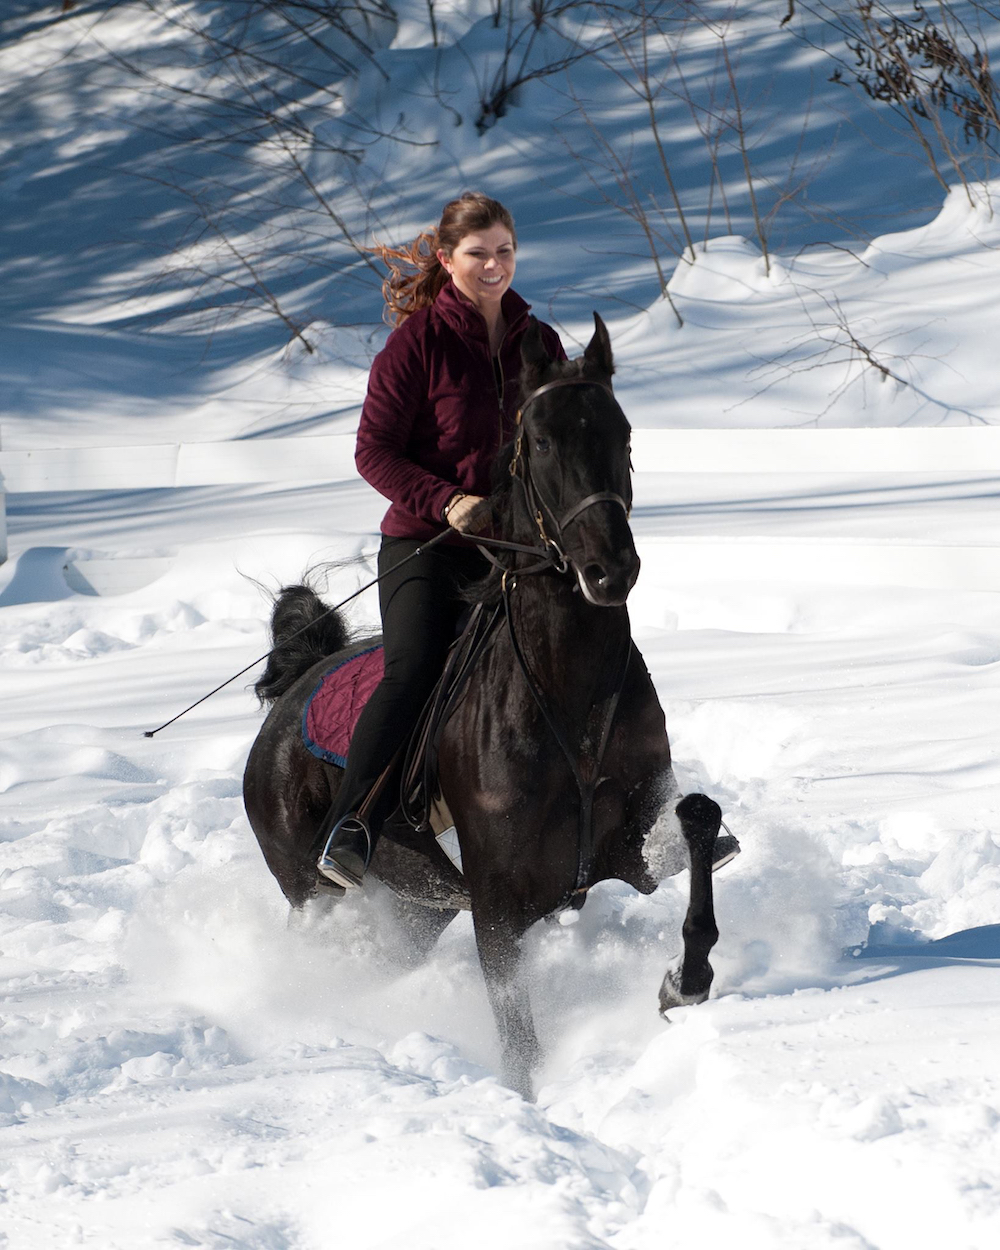 Jillian Tsiplakis and her mare Very Scary enjoy riding through the snow.